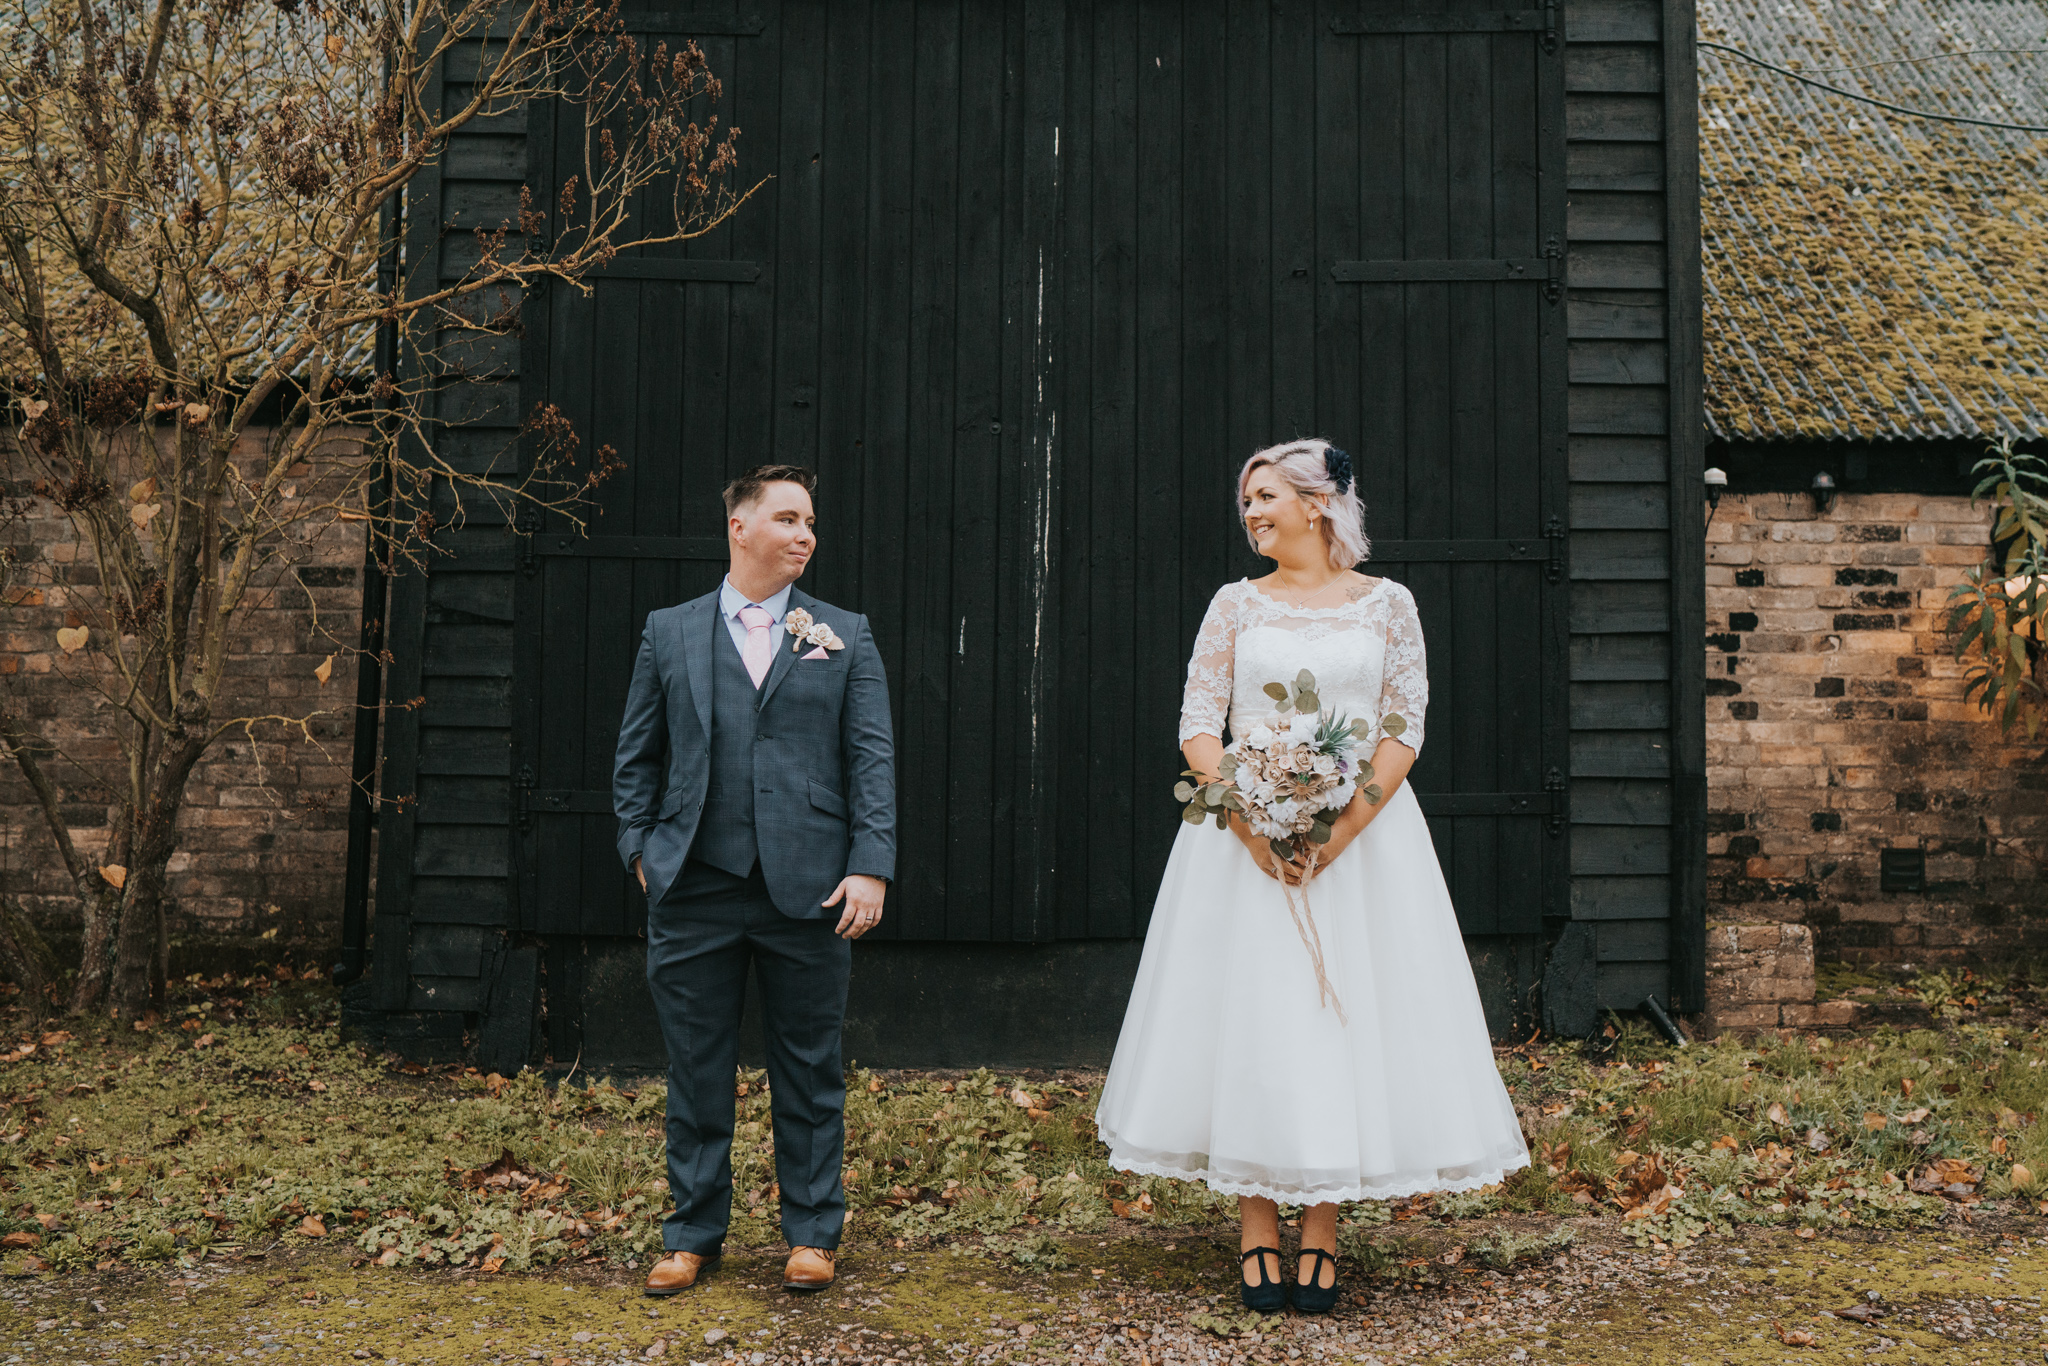 rhia-james-rustic-crabbs-barn-vintage-50s-retro-wedding-grace-elizabeth-colchester-essex-alternative-relaxed-wedding-family-photography-devon-suffolk-norfolk-essex (82 of 138).jpg